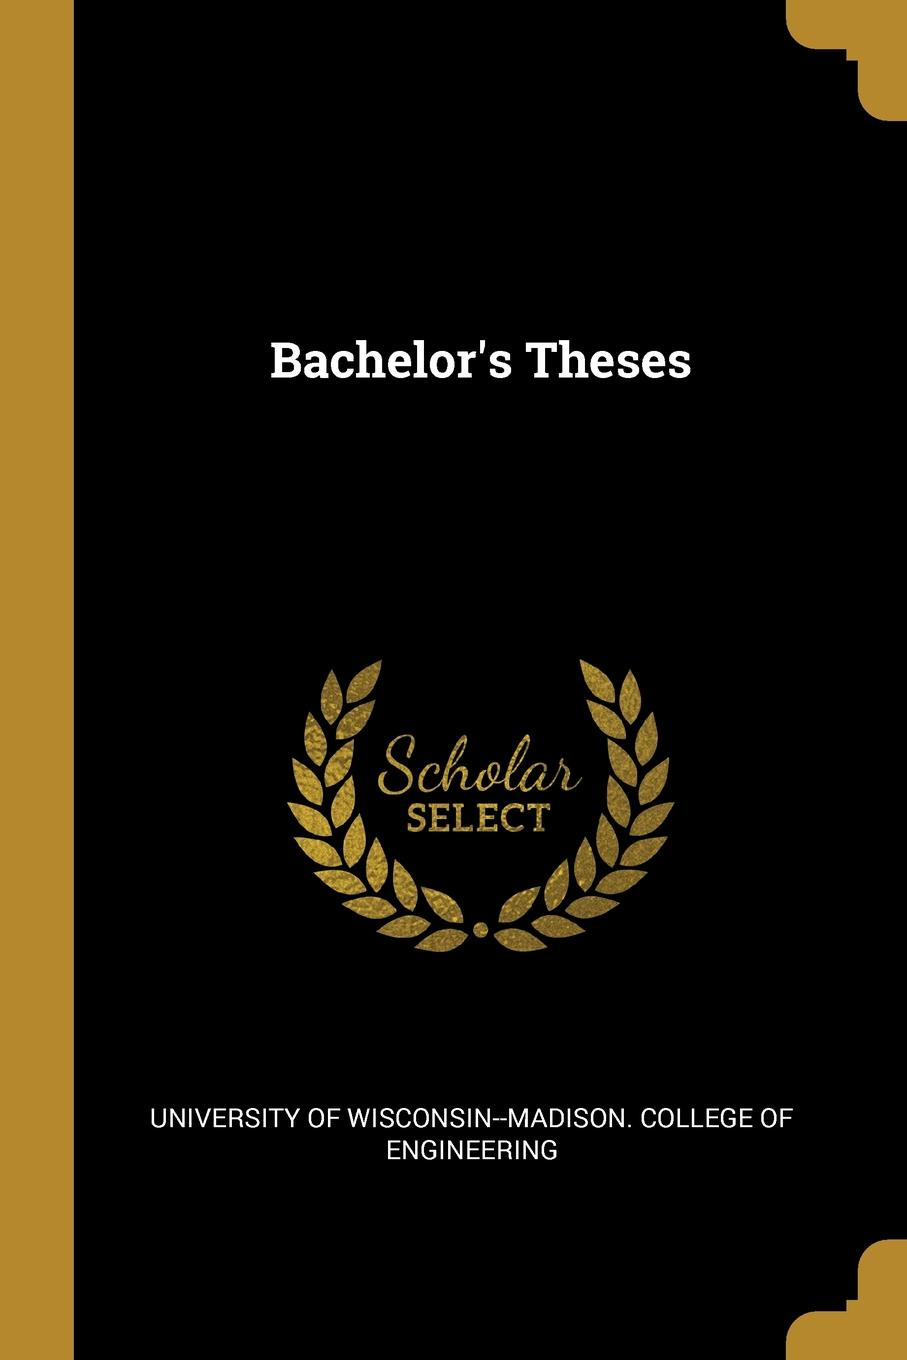 Bachelor.s Theses